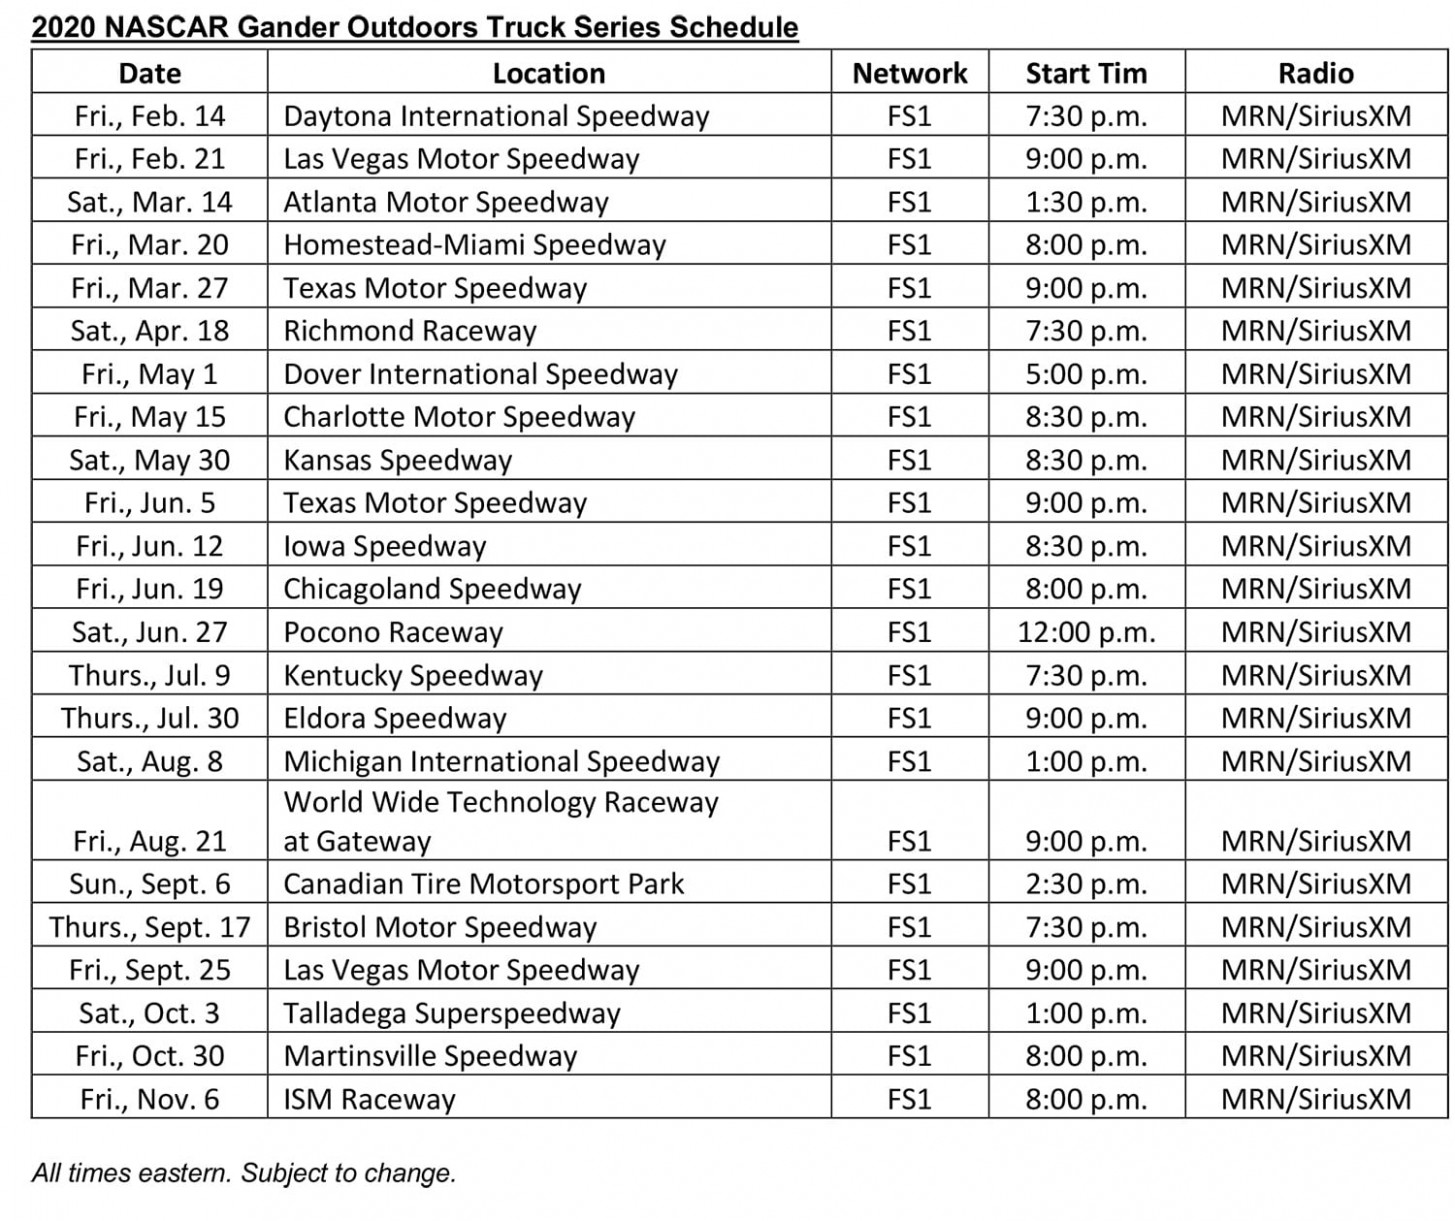 NASCAR Announces 7 Start Times and Networks - nascar xfinity schedule 2020